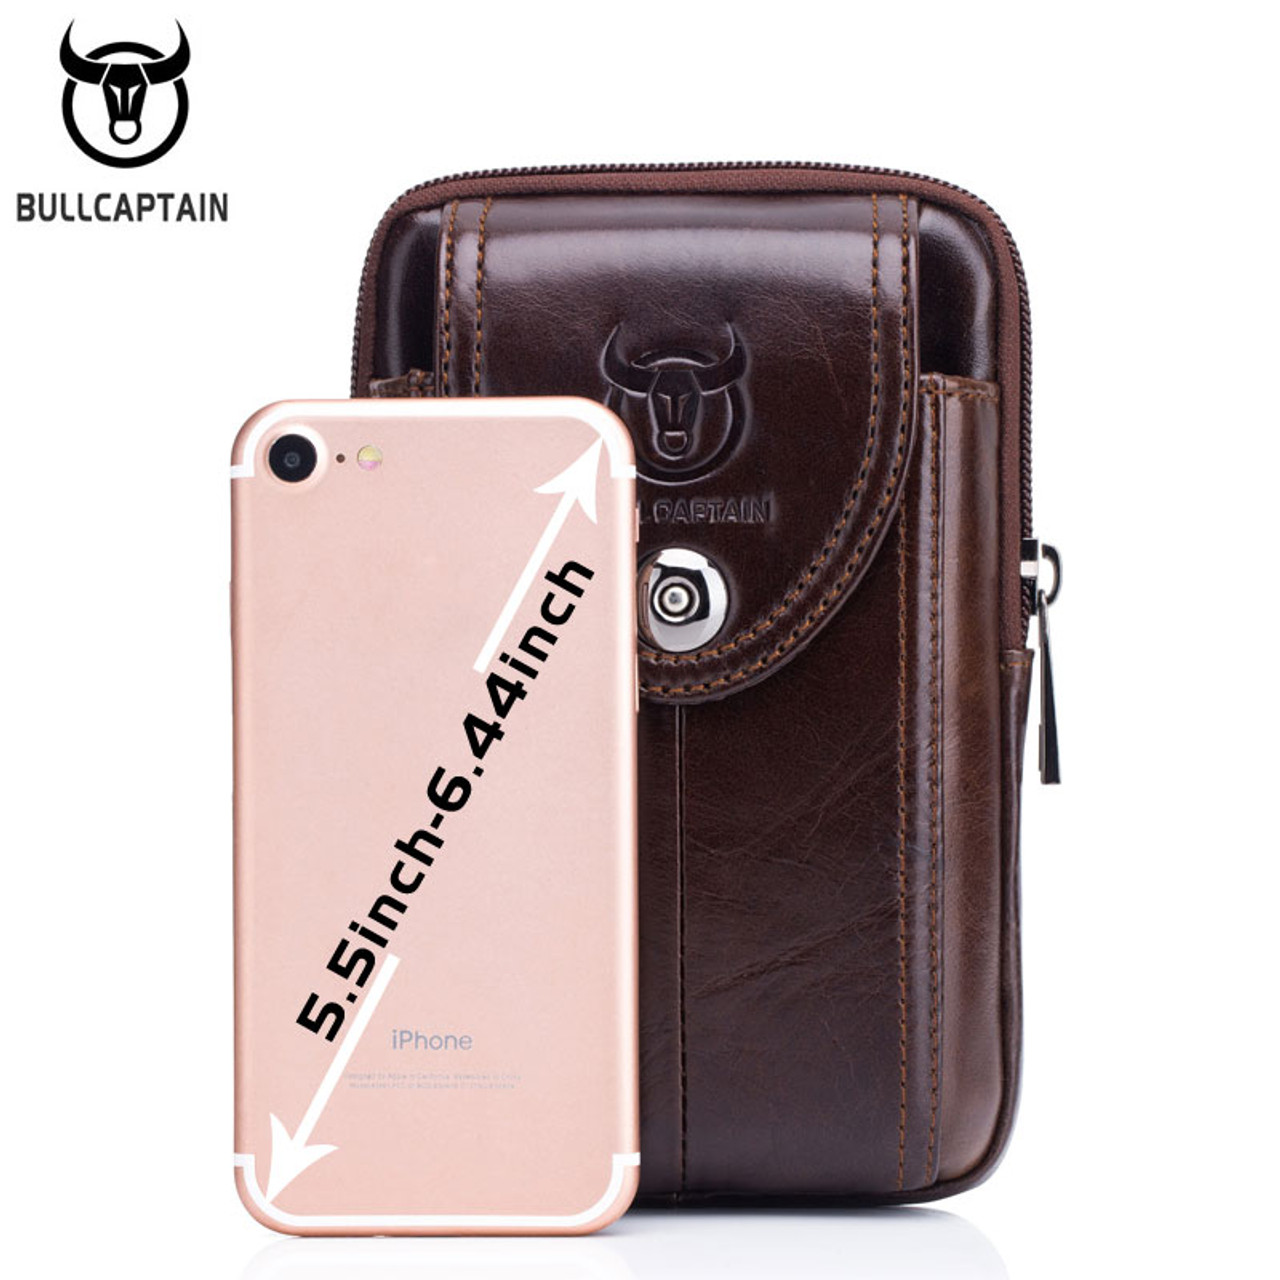 Mens Leather Bum Bag Fanny Pack Waist Belt Bag Pouch for Cellphone iPhone